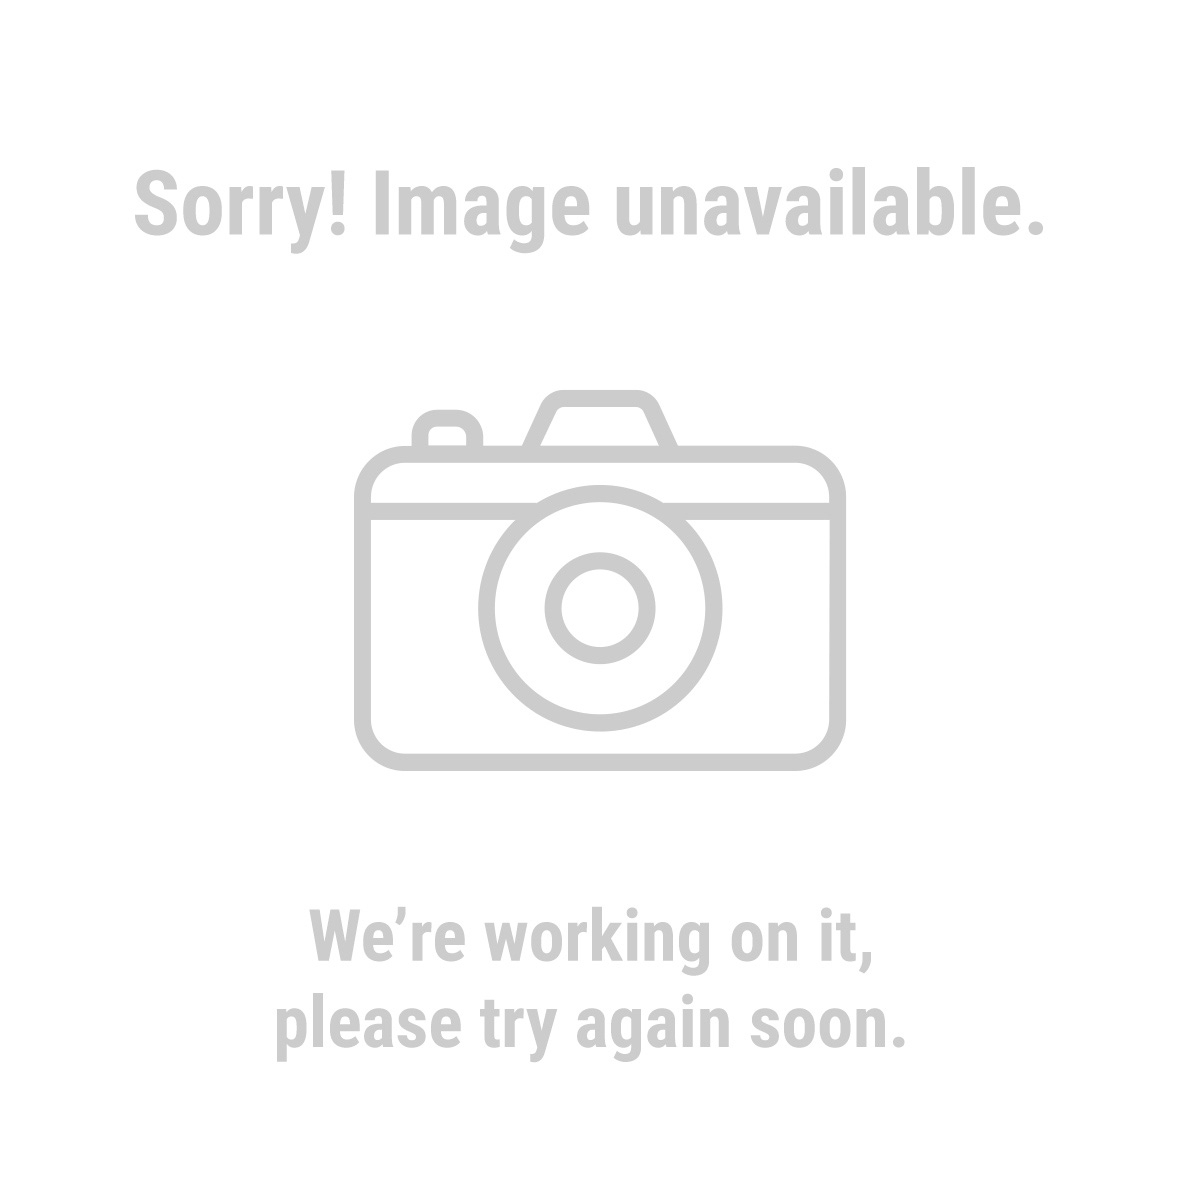 Chicago Electric Power Tools 63114 1/2 in. Heavy Duty D-Handle Variable Speed Reversible Drill